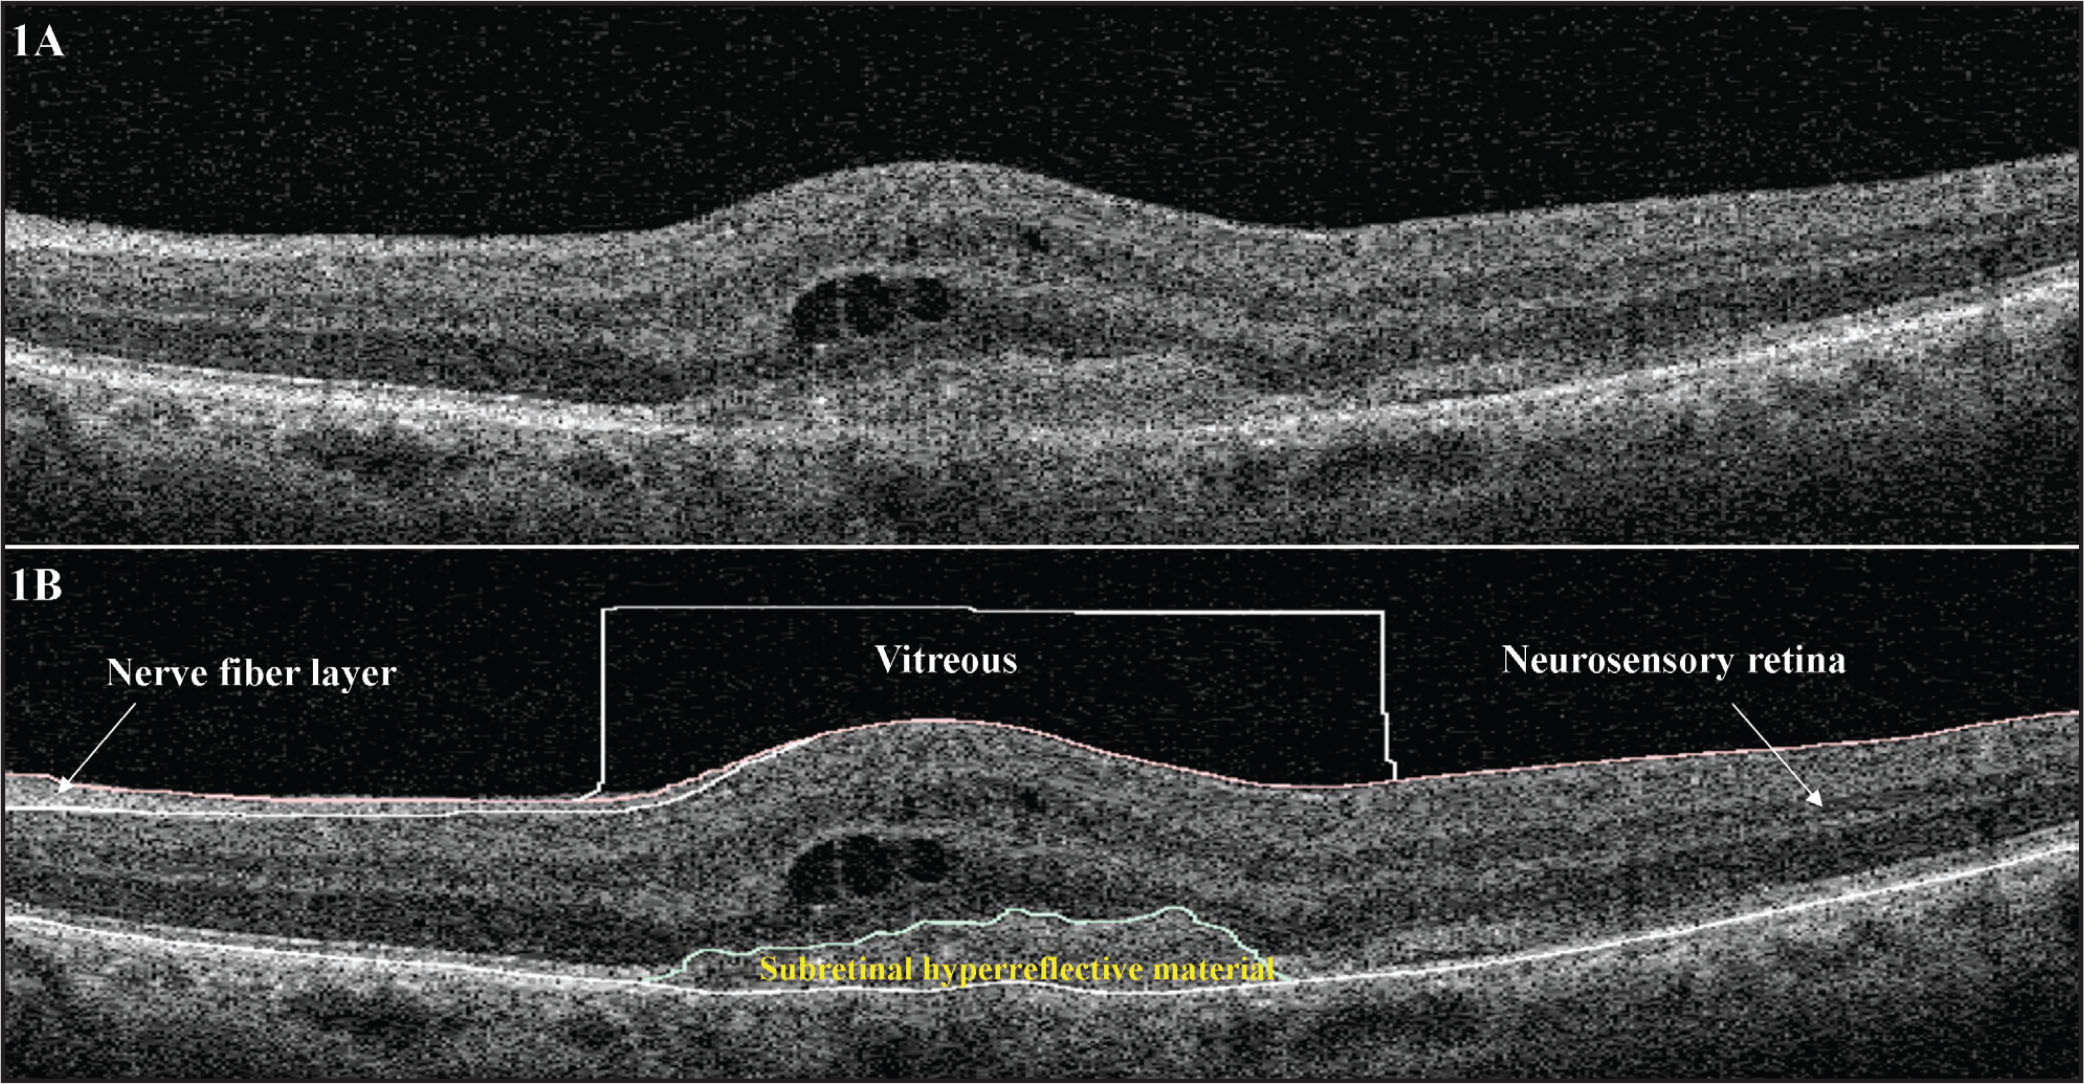 OCT B-scan of the left eye in a patient with type 2 choroidal neovascular membrane. (A) Original unsegmented OCT B-scan image. (B) OCT B-scan image following manual segmentation of the vitreous, nerve fiber layer, and subretinal hyperreflective material.